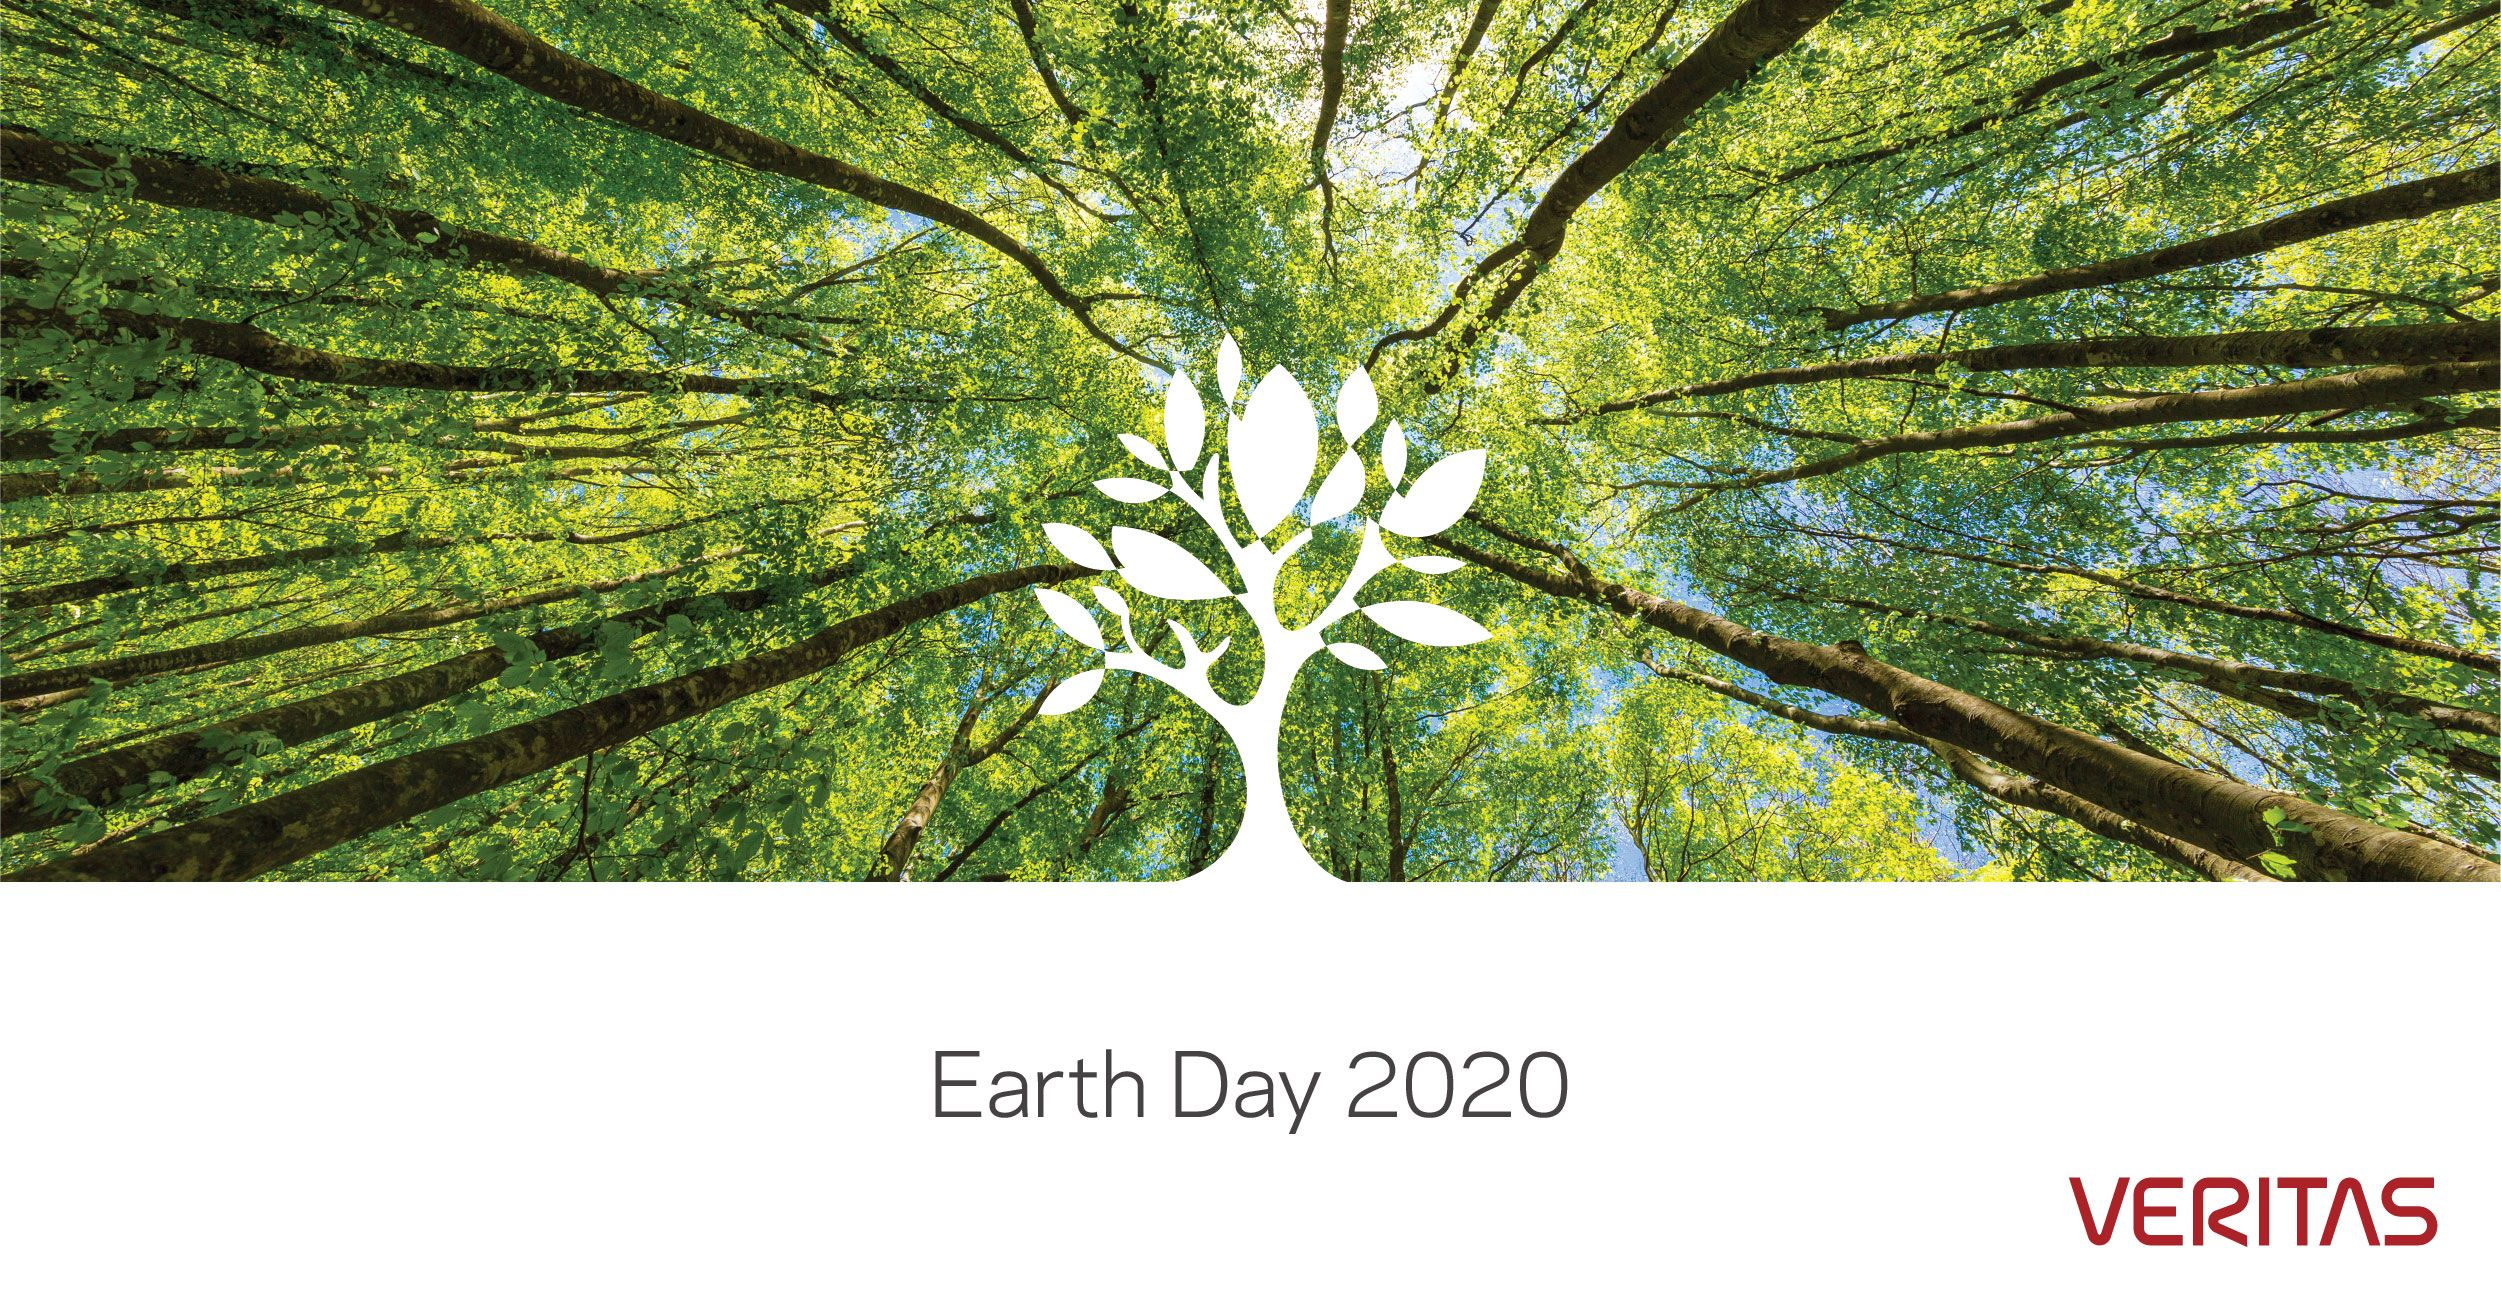 Veritas Celebrates Earth Day 2020